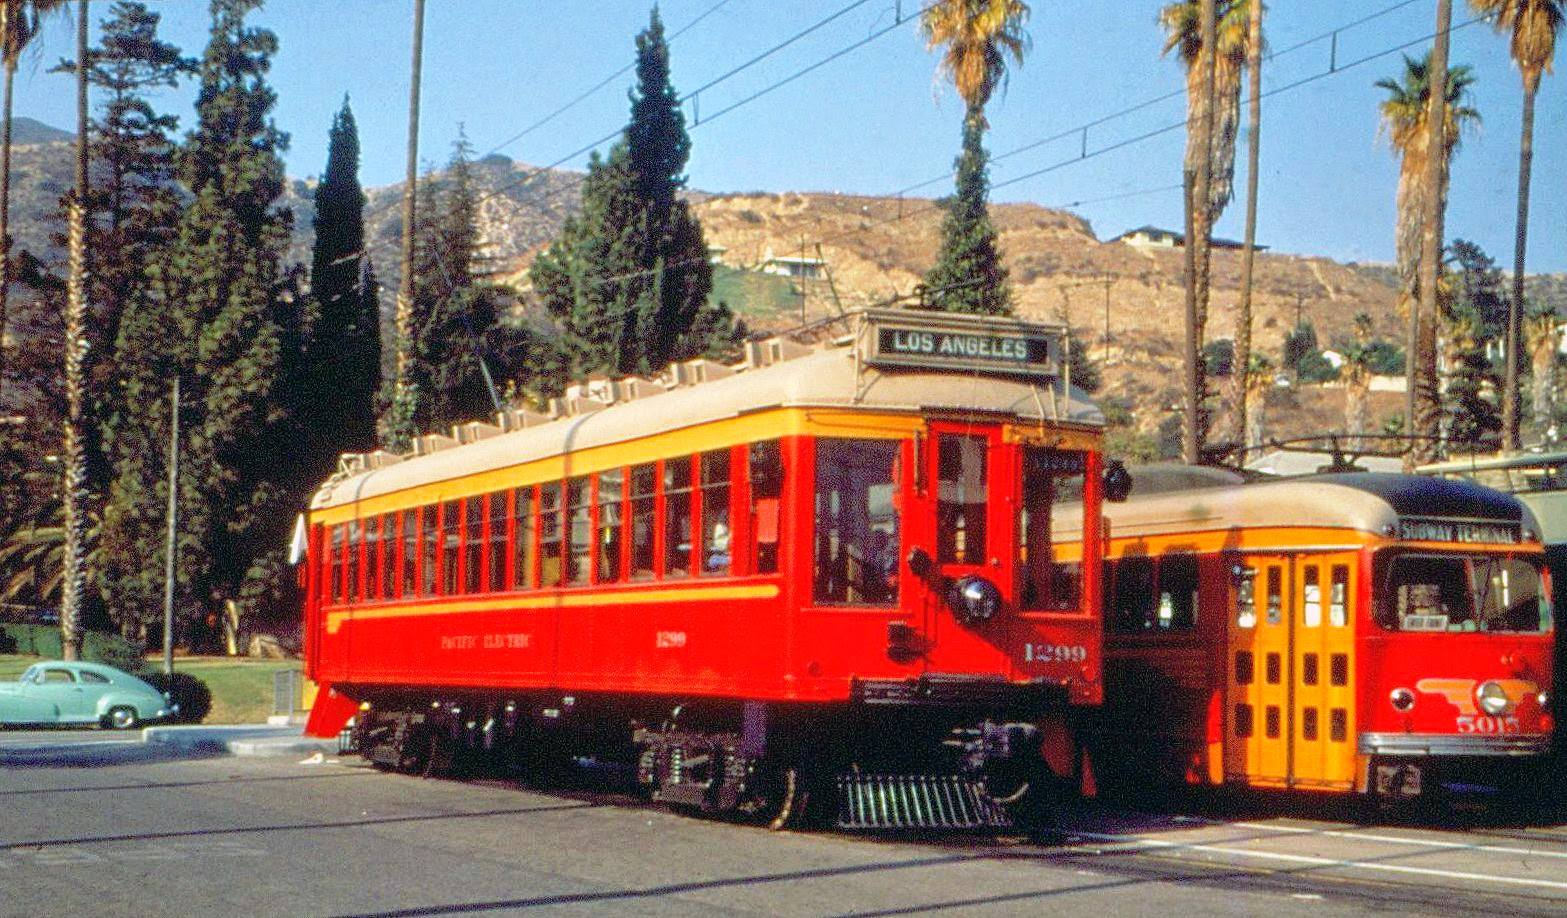 Pacific Electric Railway on Modes Of Transportation